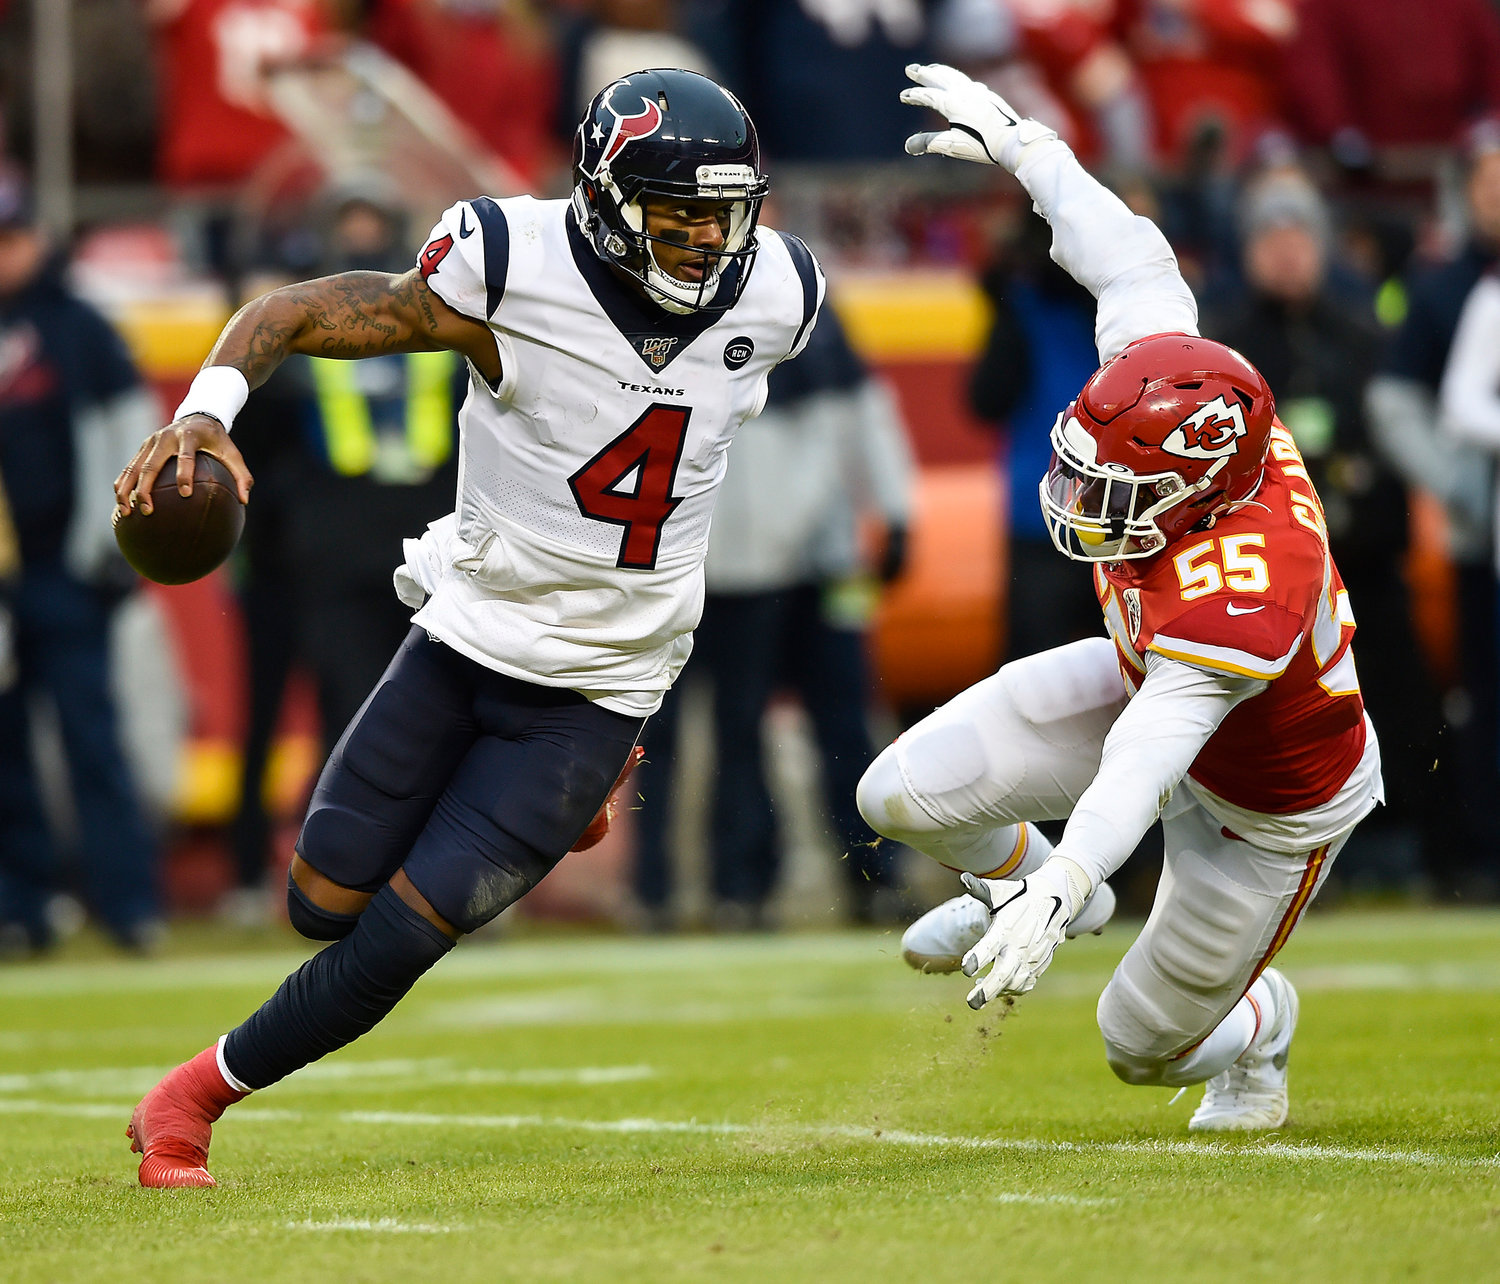 Kansas City Chiefs defensive end Frank Clark pressures Houston Texans quarterback Deshaun Watson Sunday, Jan. 12, 2020, at Arrowhead Stadium in Kansas City, Mo. (Jill Toyoshiba/Kansas City Star/TNS)